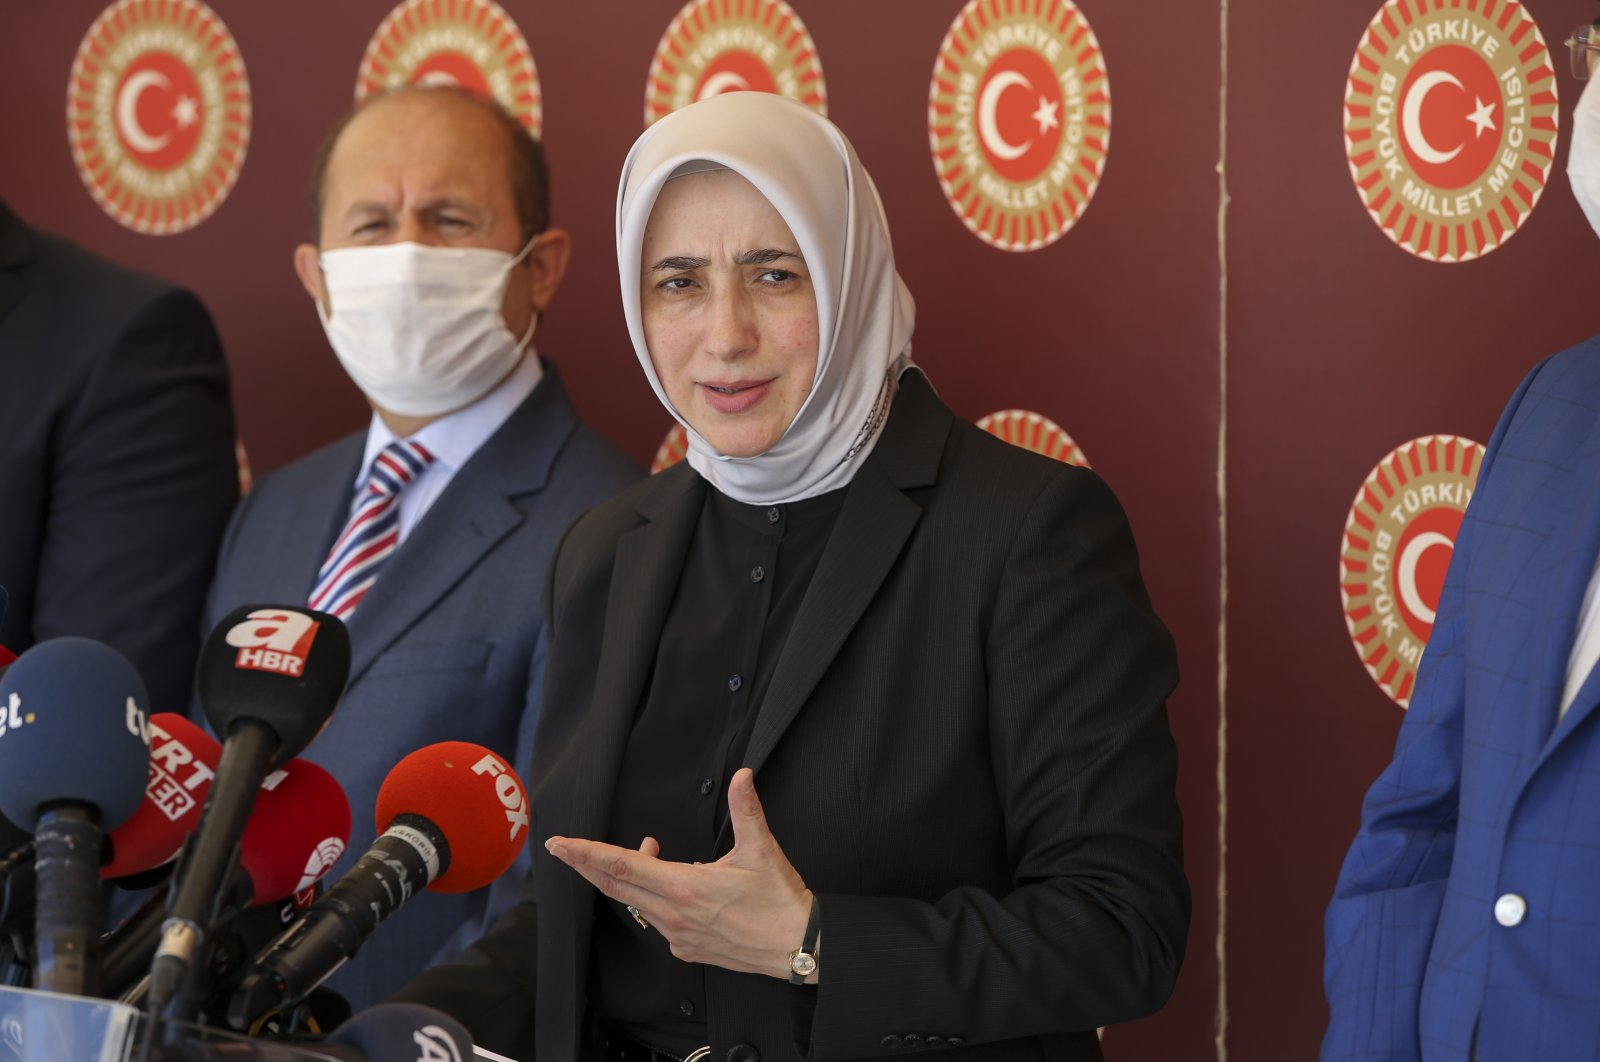 Özlem Zengin, the vice-chair of the ruling Justice and Development Party (AK Party) Parliamentary Group, during a press conference at the parliament in capital Ankara, July 21, 2020. (AA Photo)